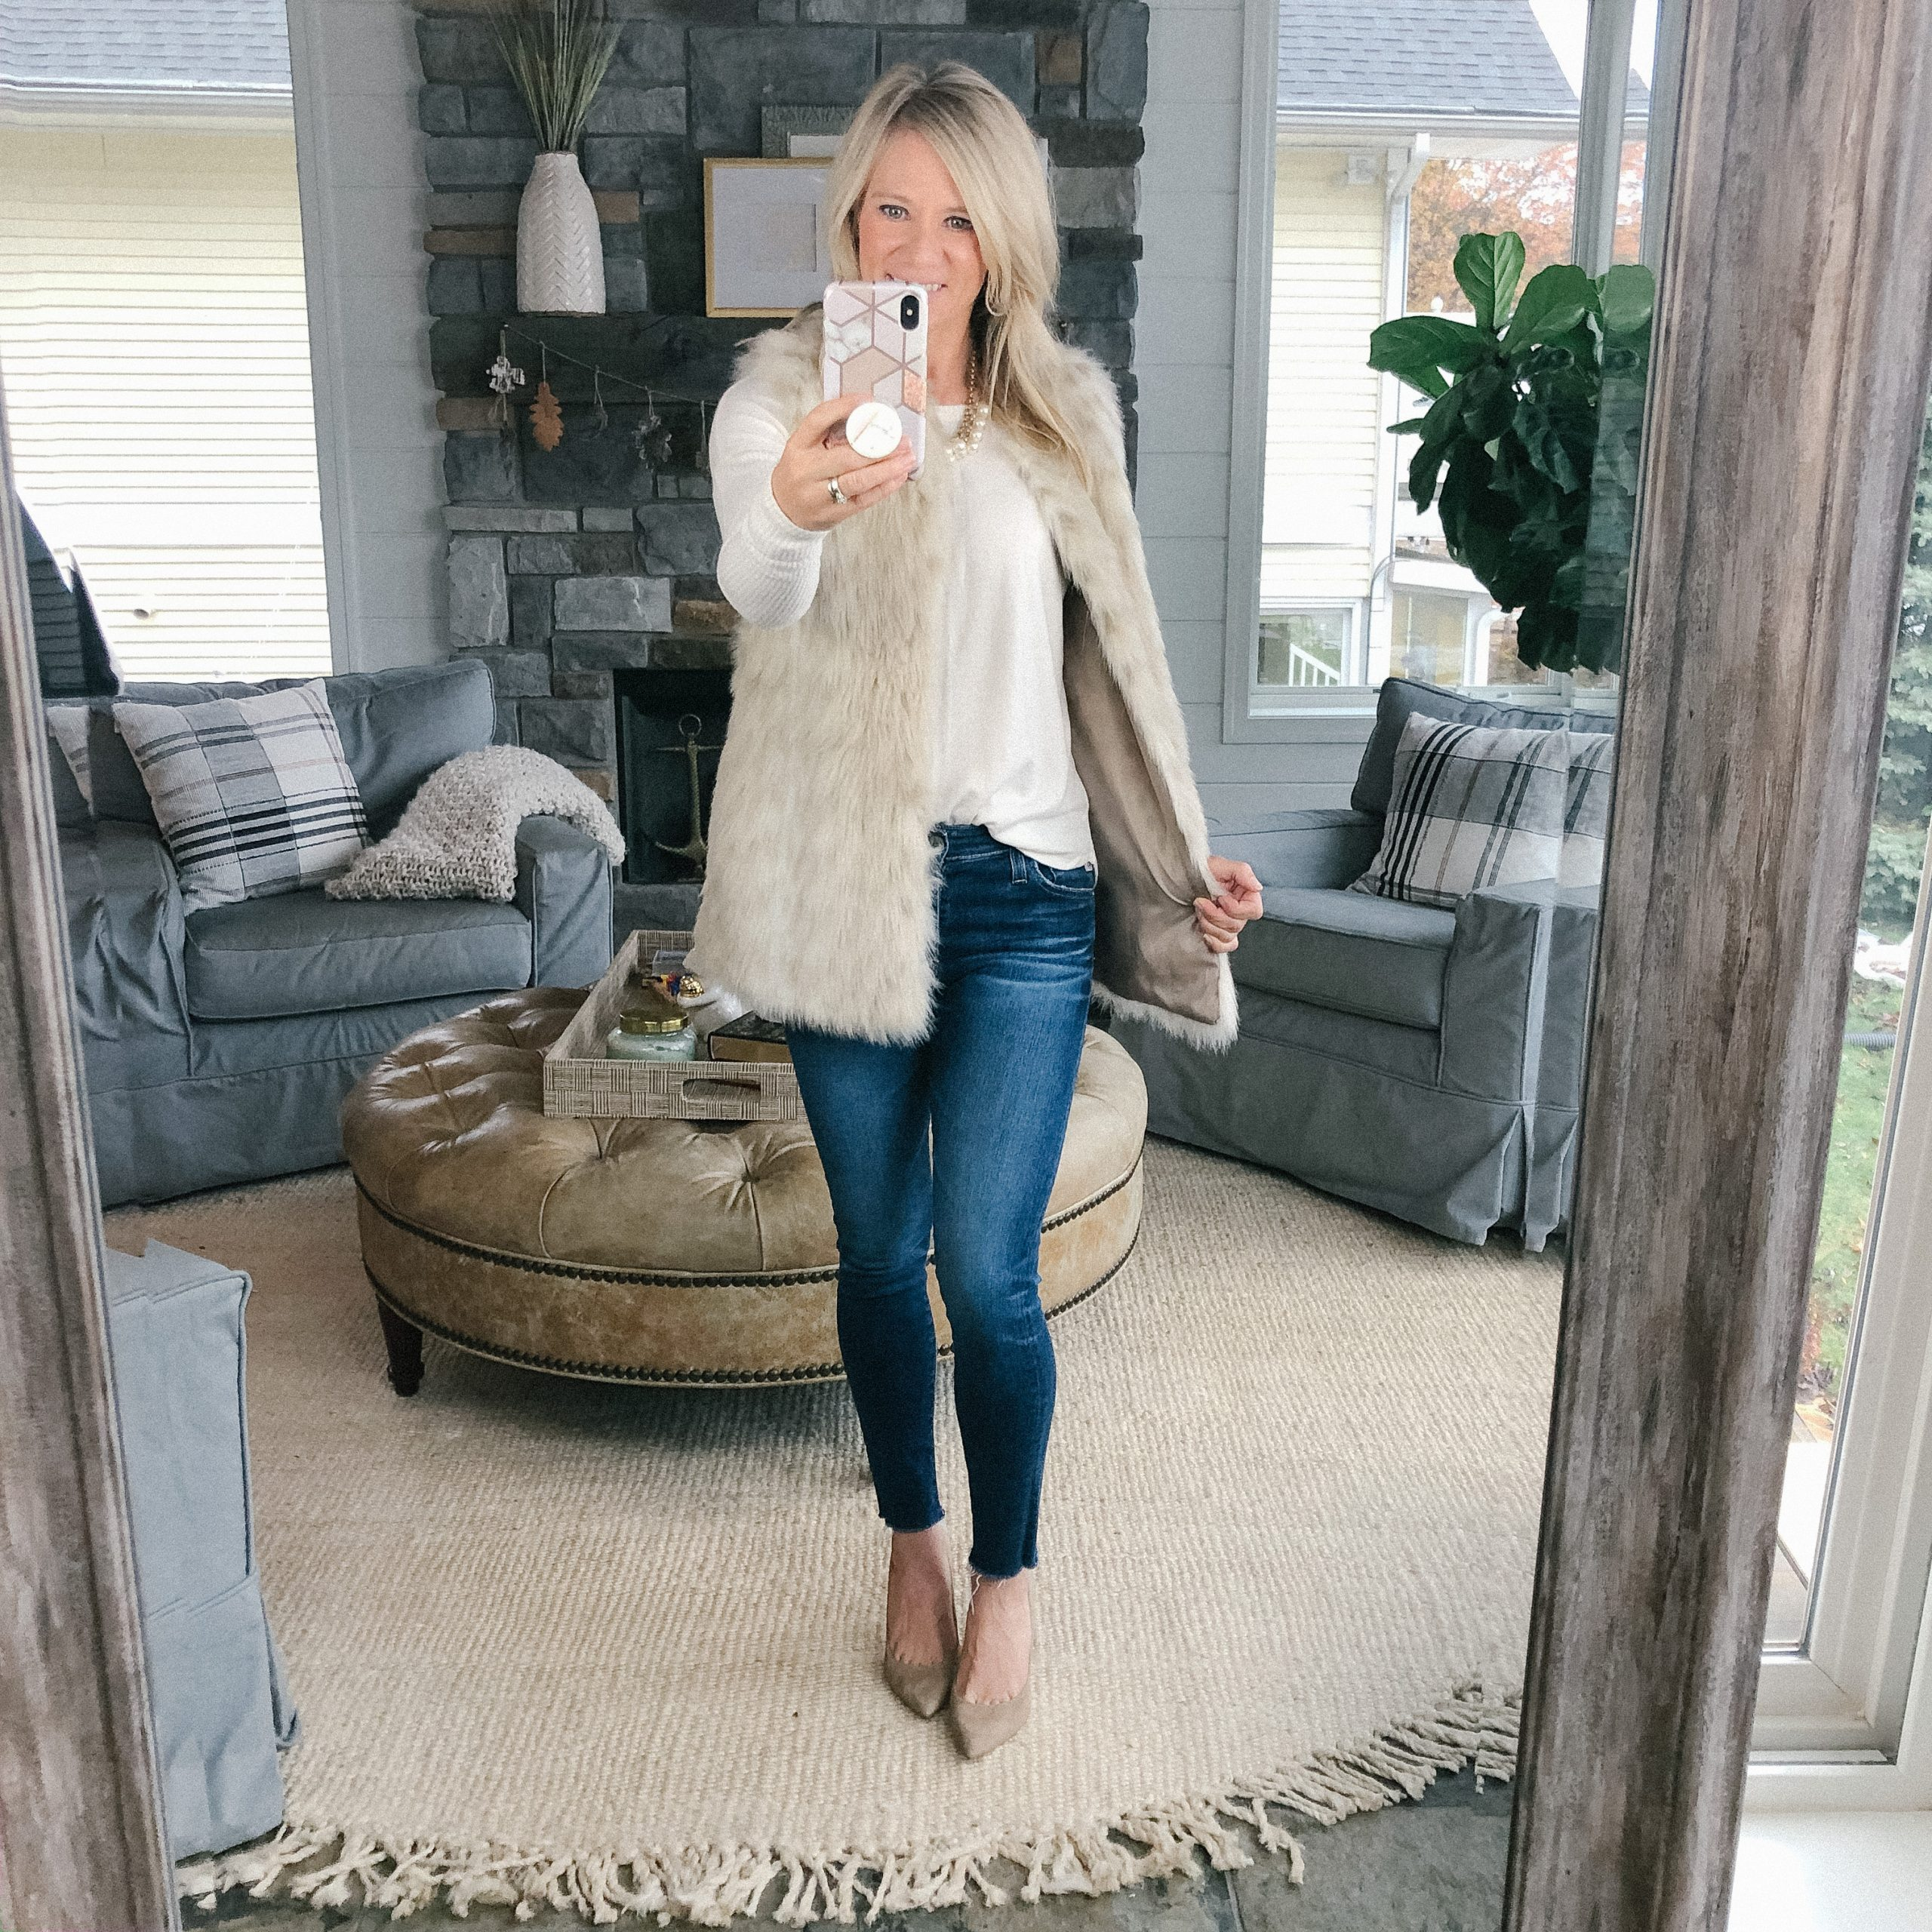 The Barely B's blogger wearing an Abercrombie cream sweater, fur vest, jeans, and tan heels